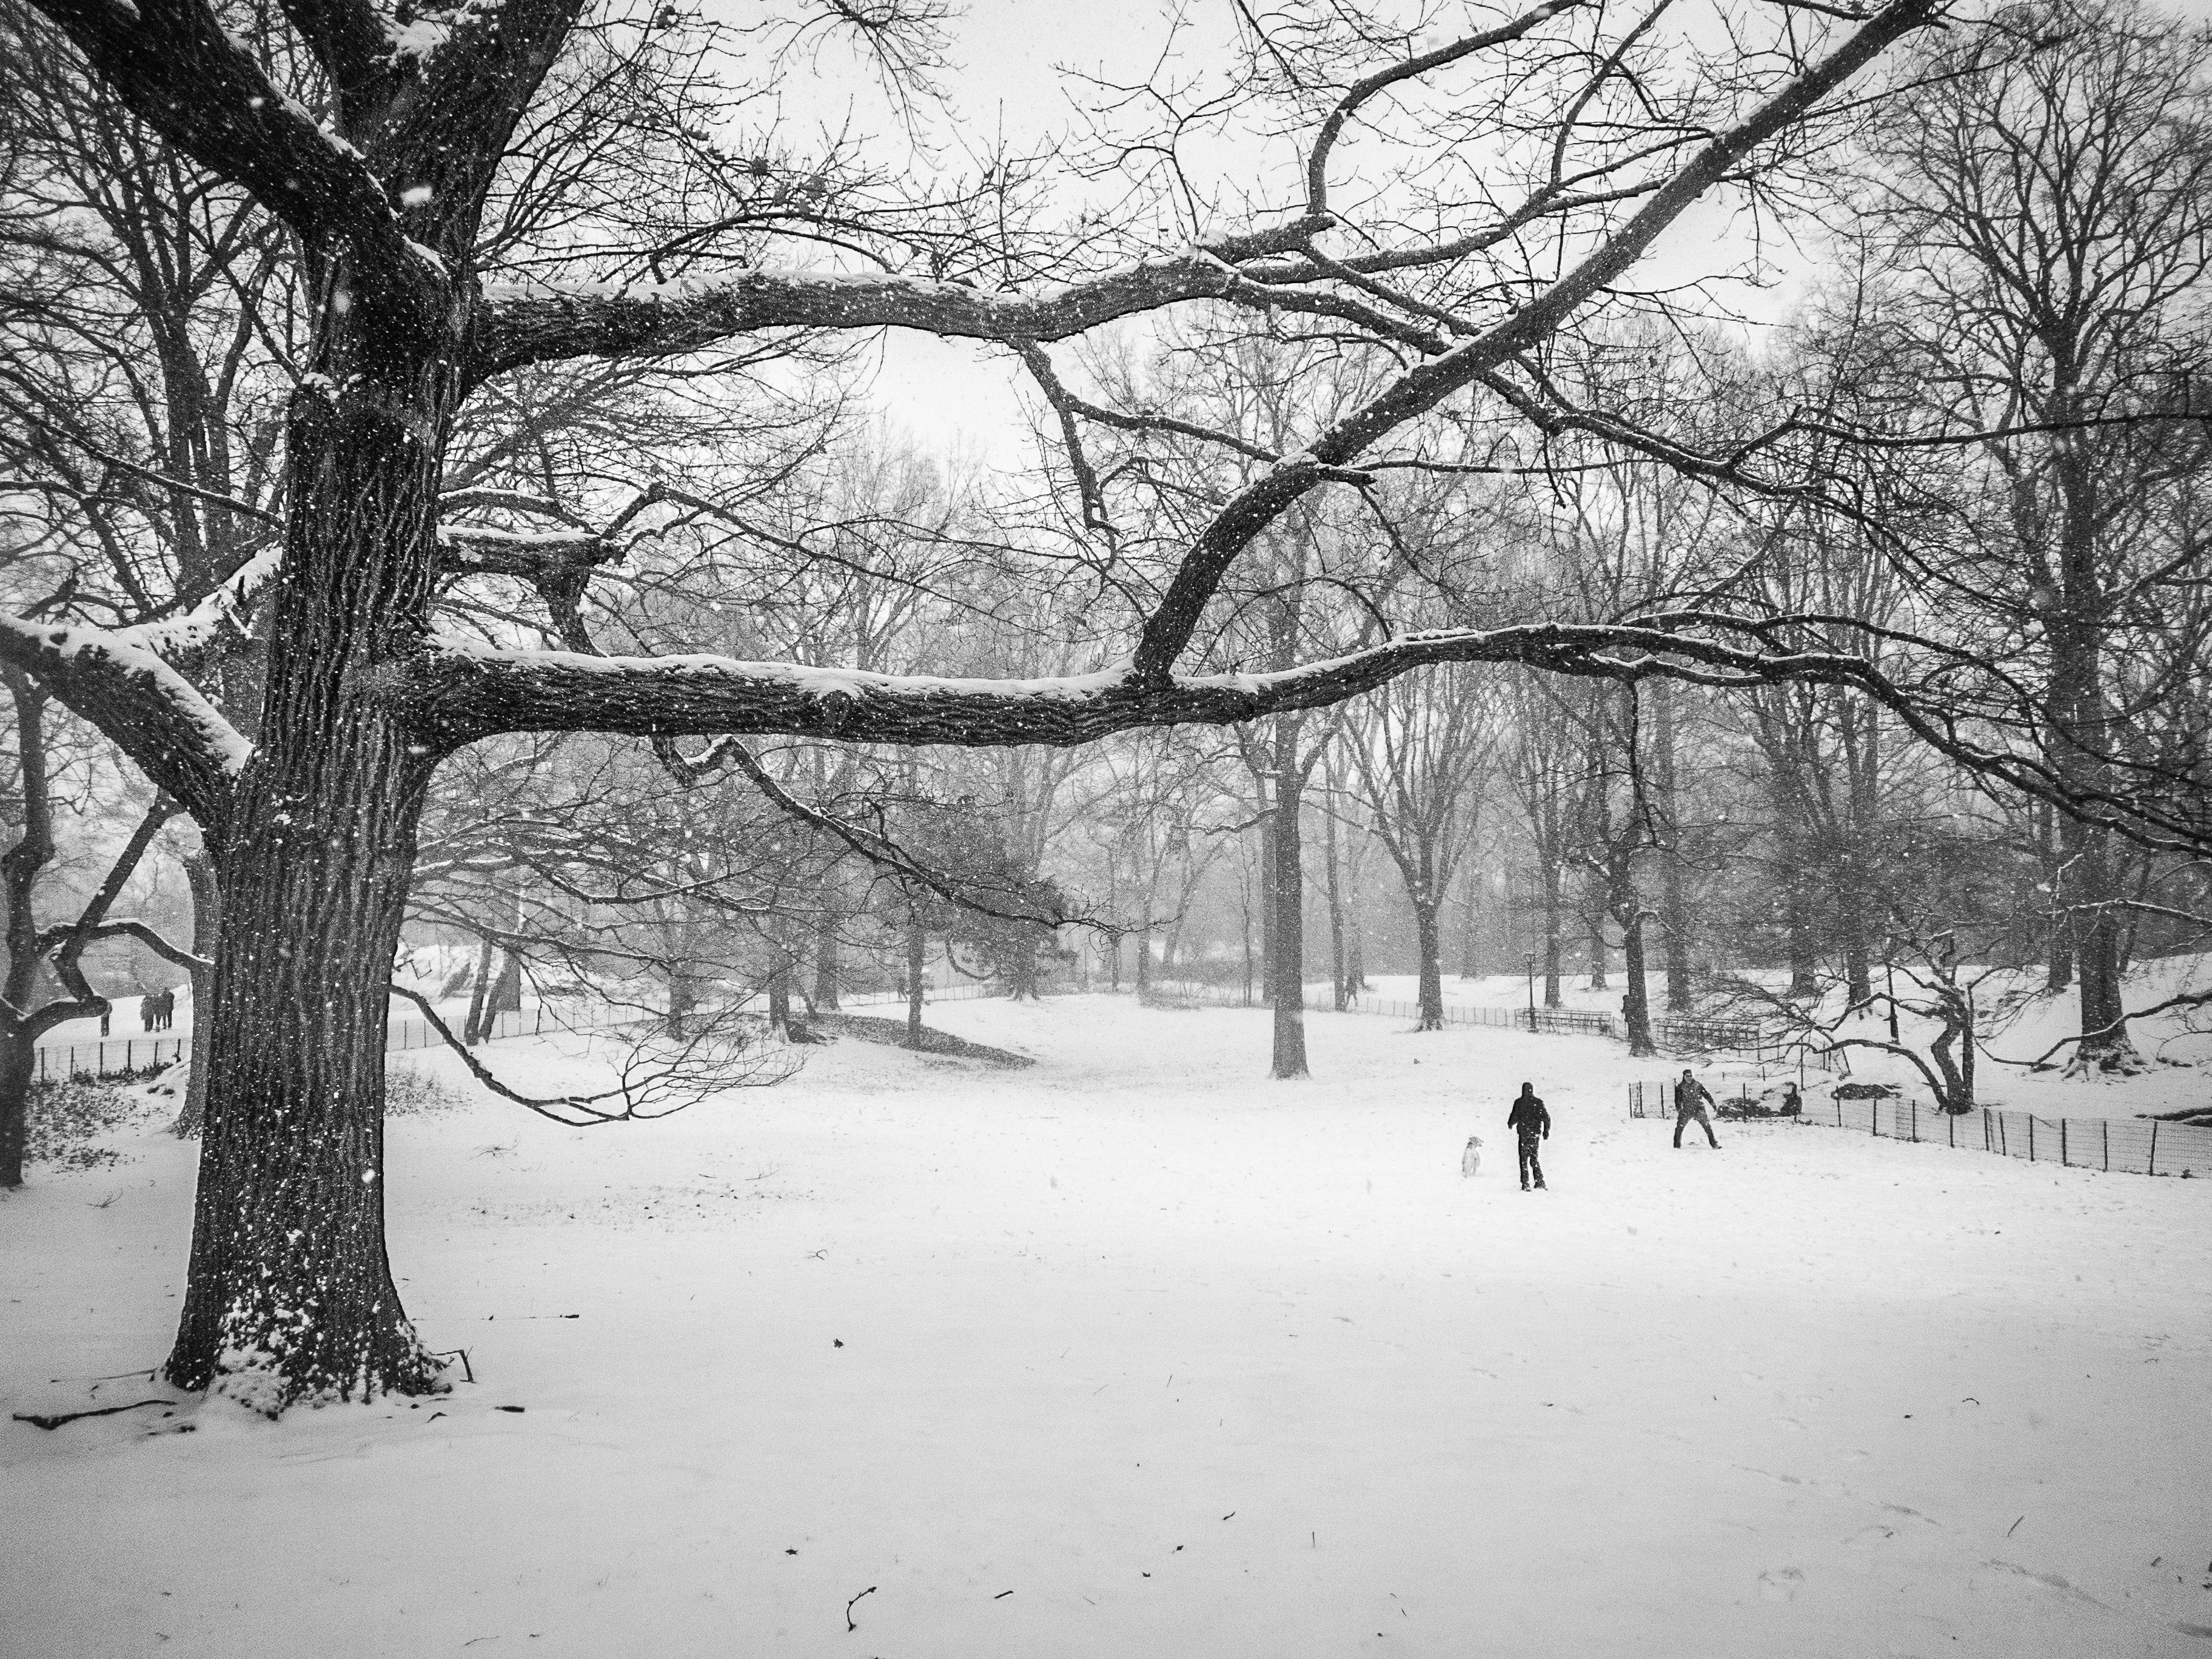 A December snowstorm in Central Park, New York City.